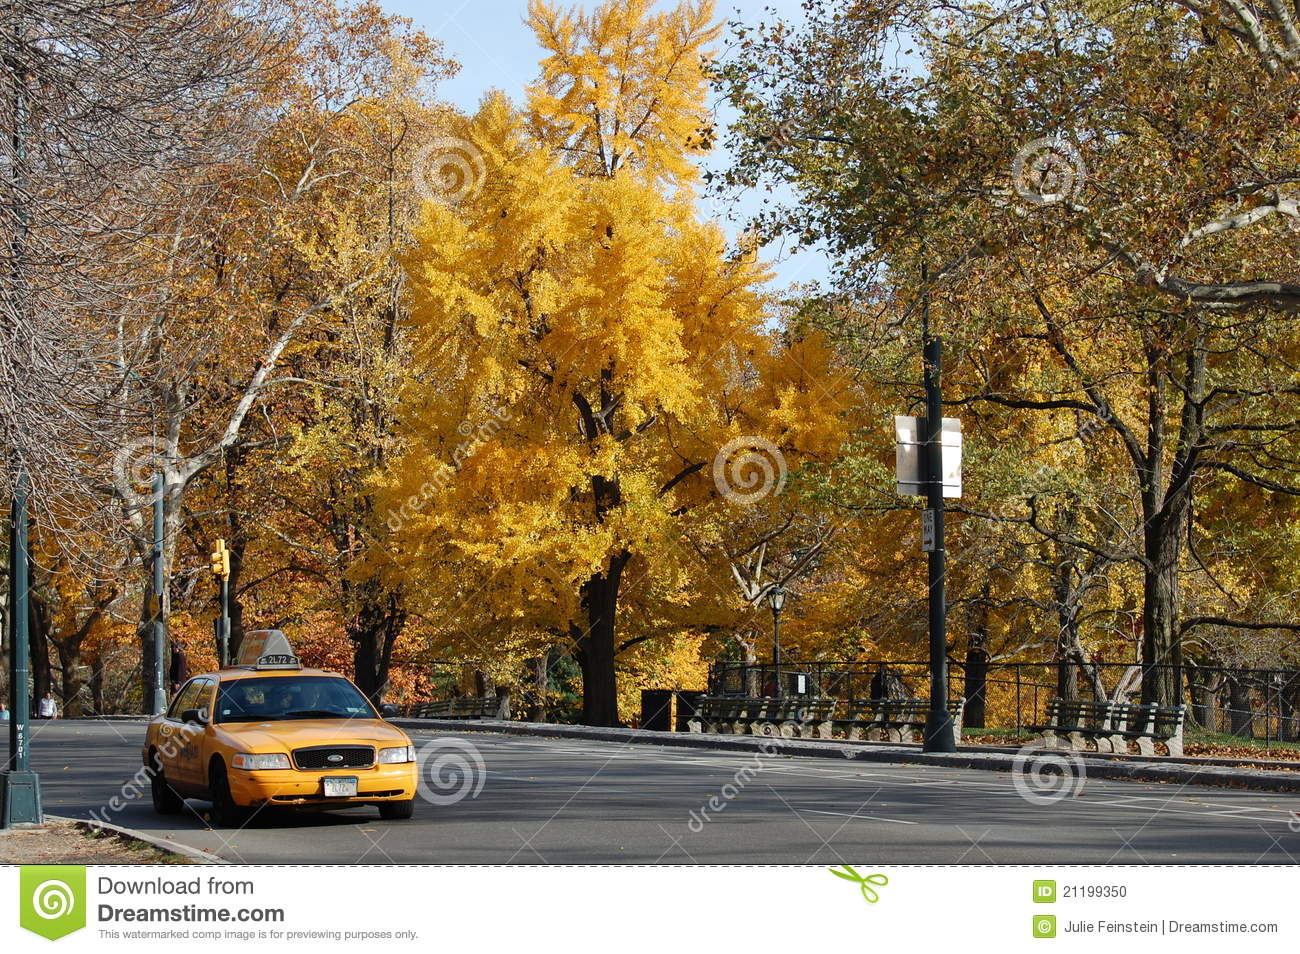 Yellow Cab in Central Park in New York City